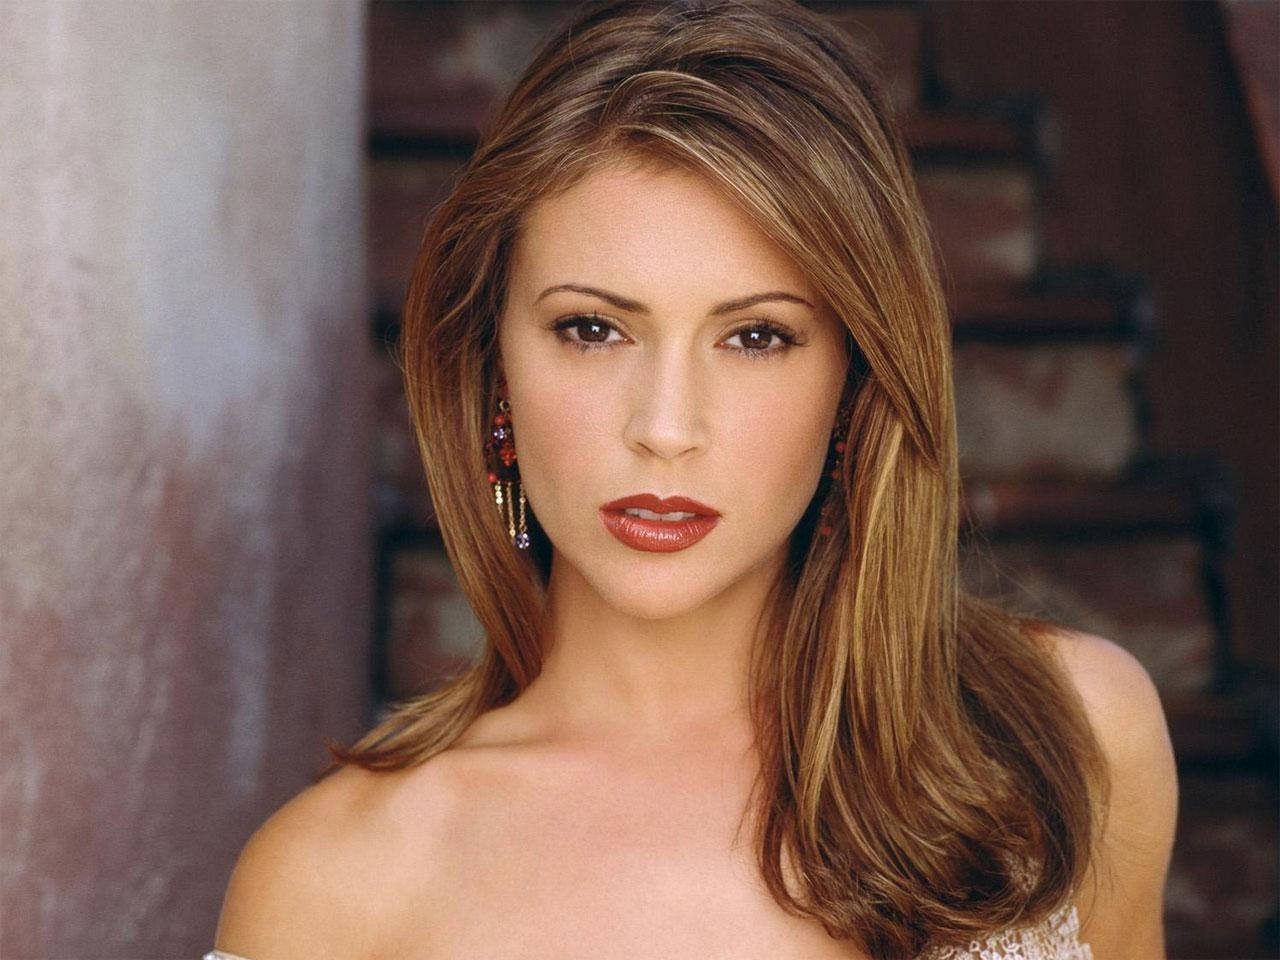 alyssa milano celebrities - photo #32